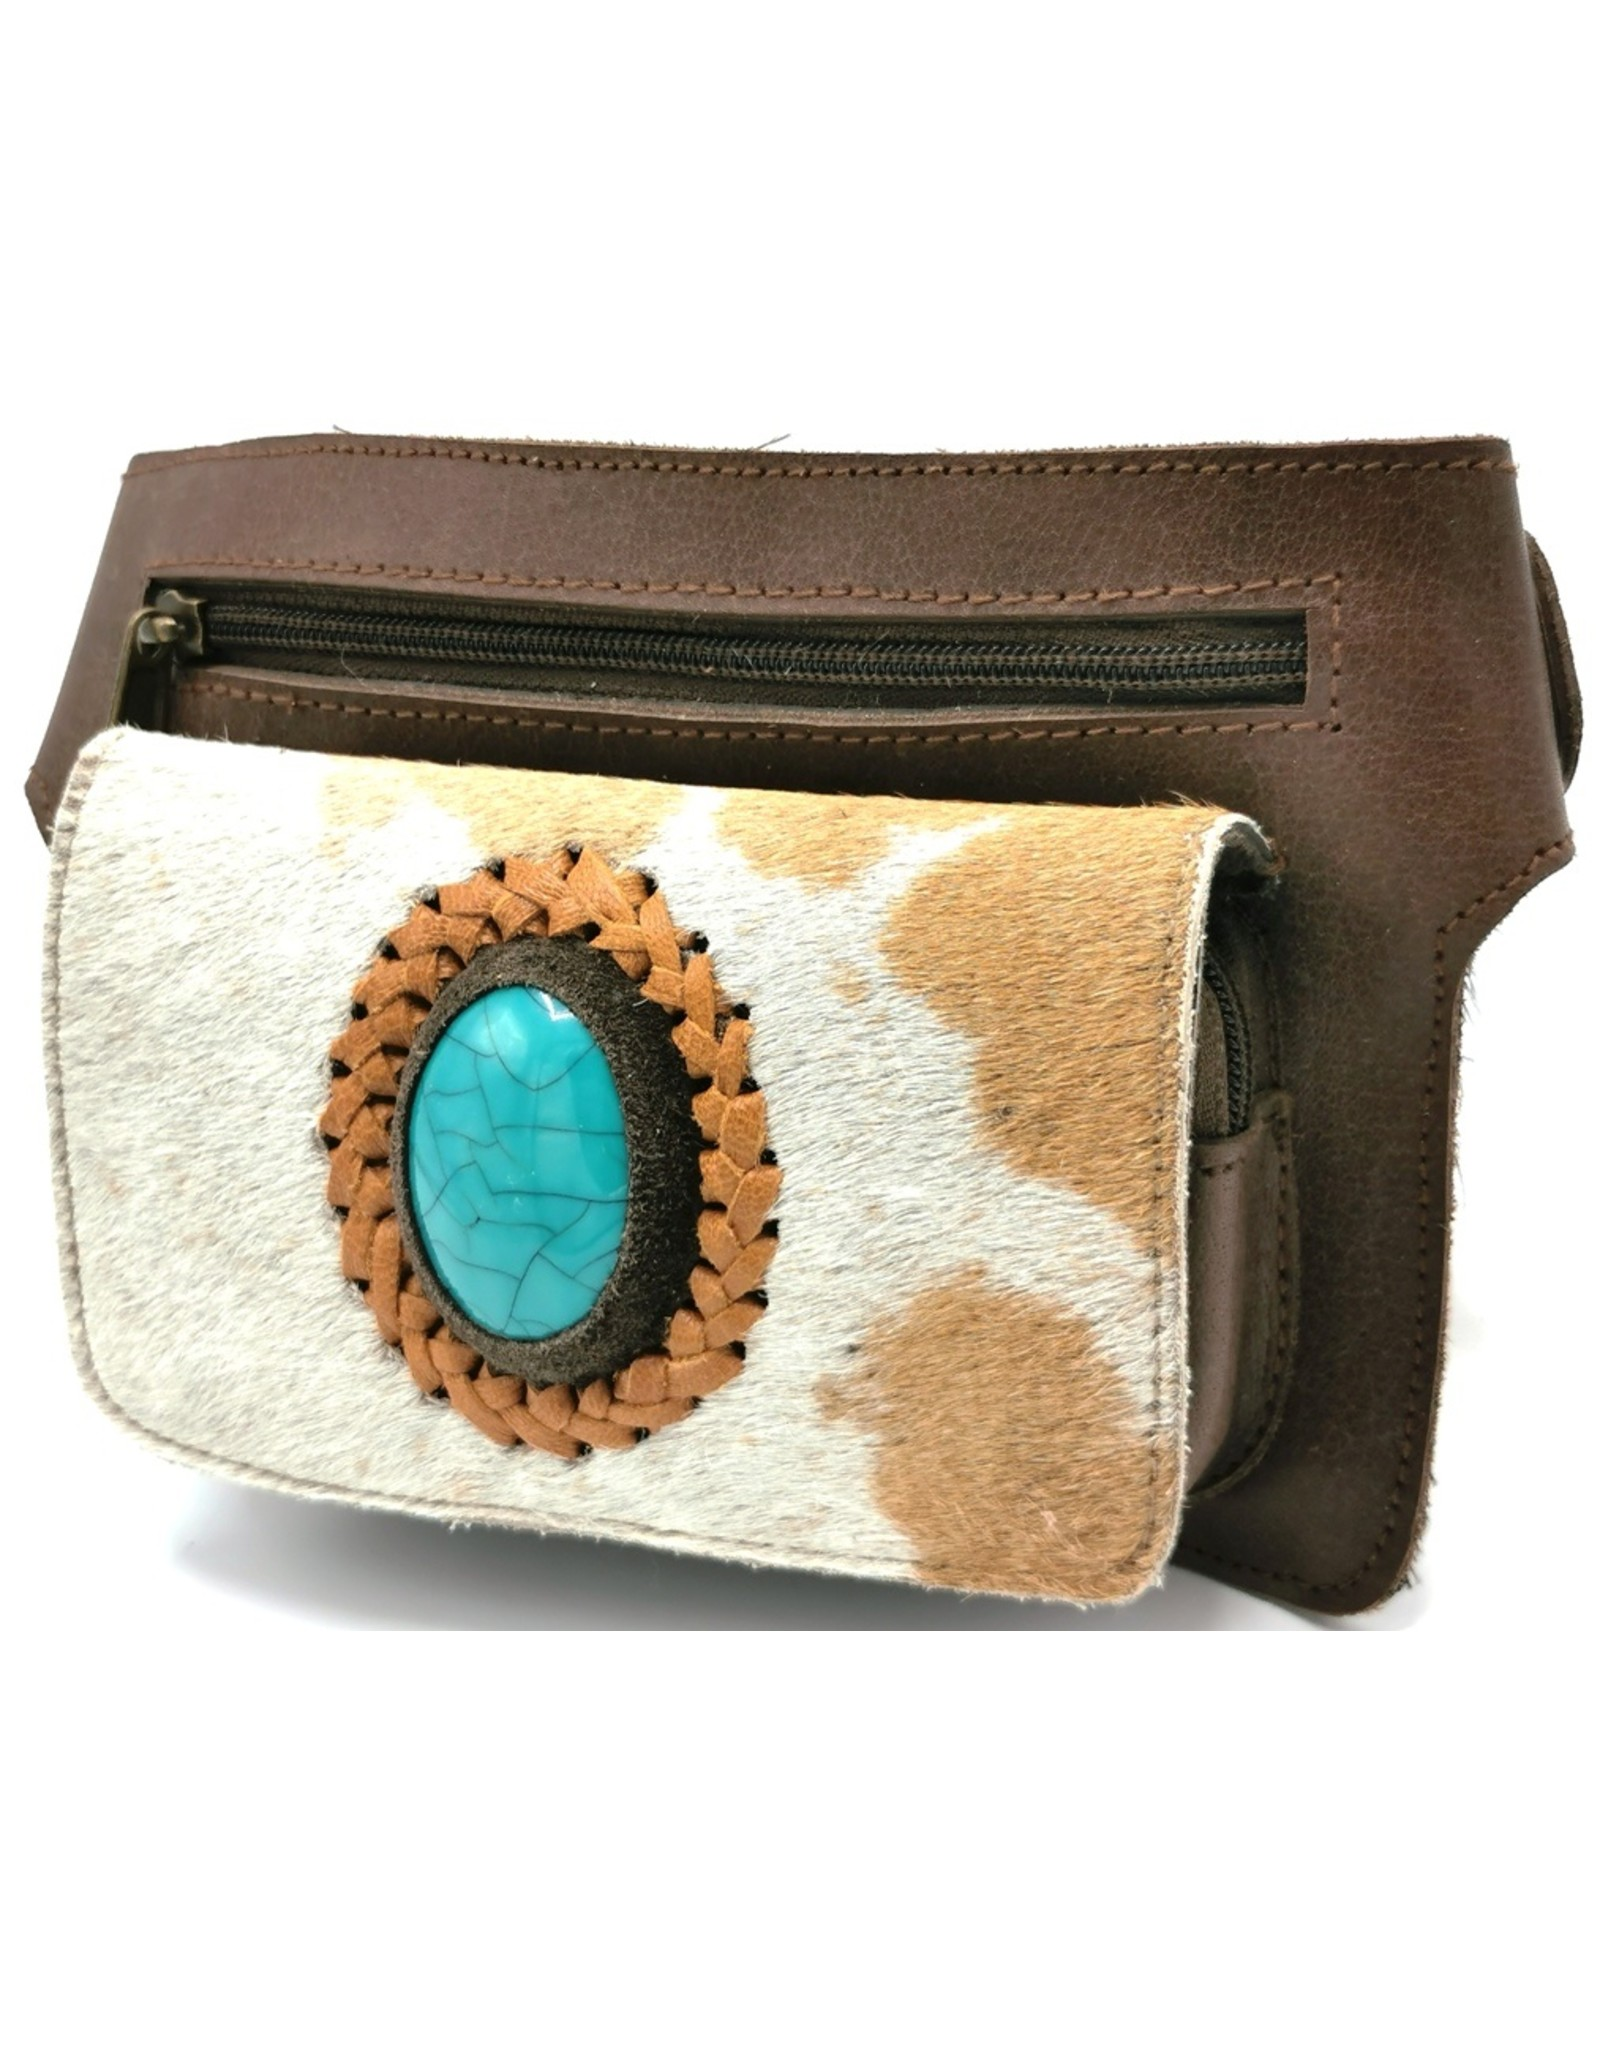 Trukado Small leather bags, clutches and more - Leather bum bag with fur and blue stone, rectangle